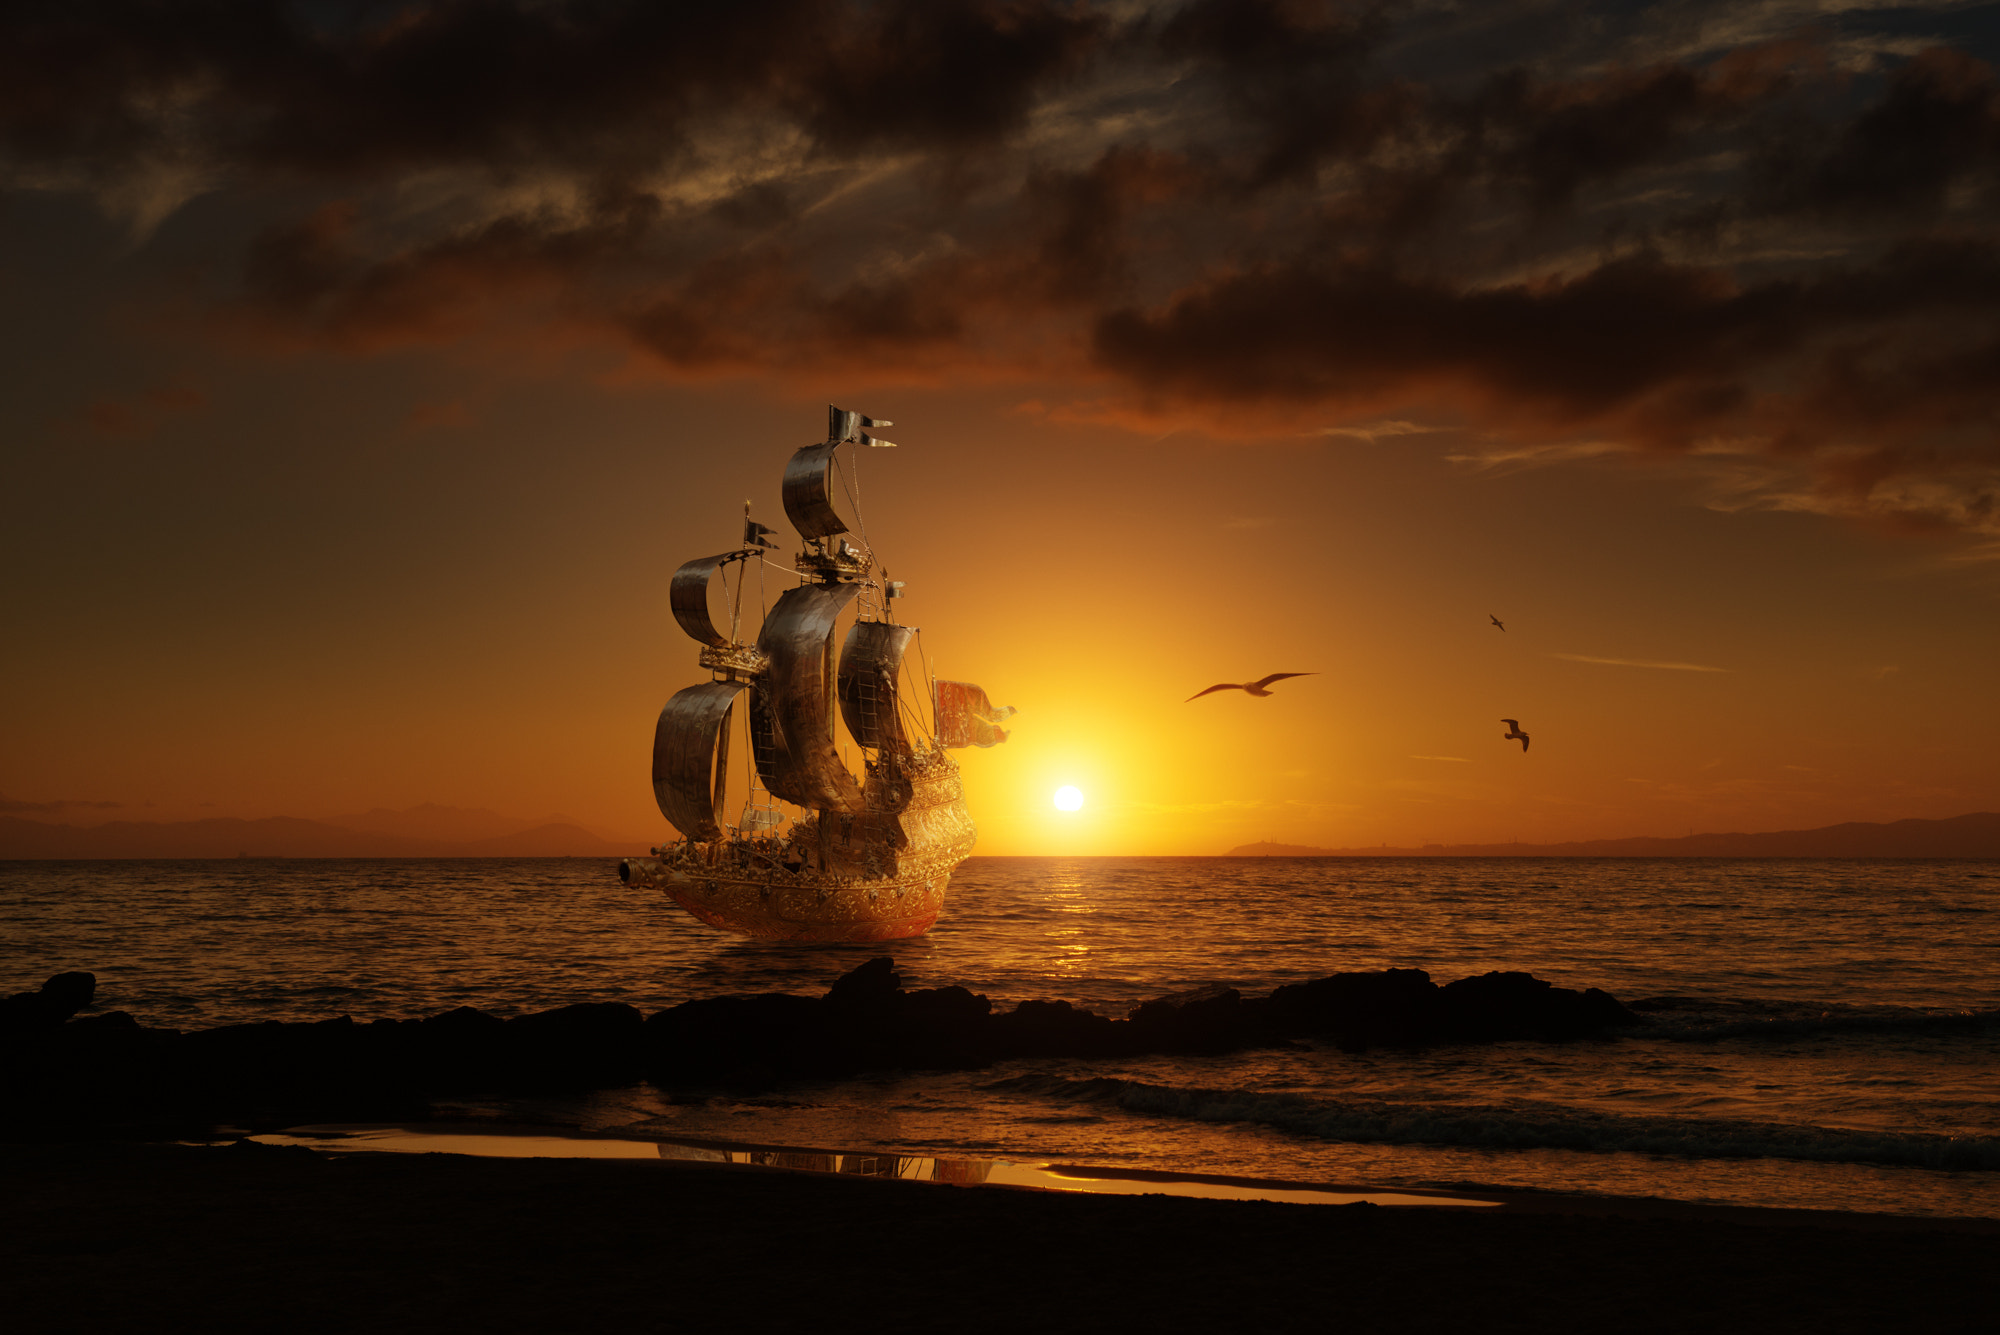 Photograph The arrival of Queen Helvetia by John Wilhelm is a photoholic on 500px